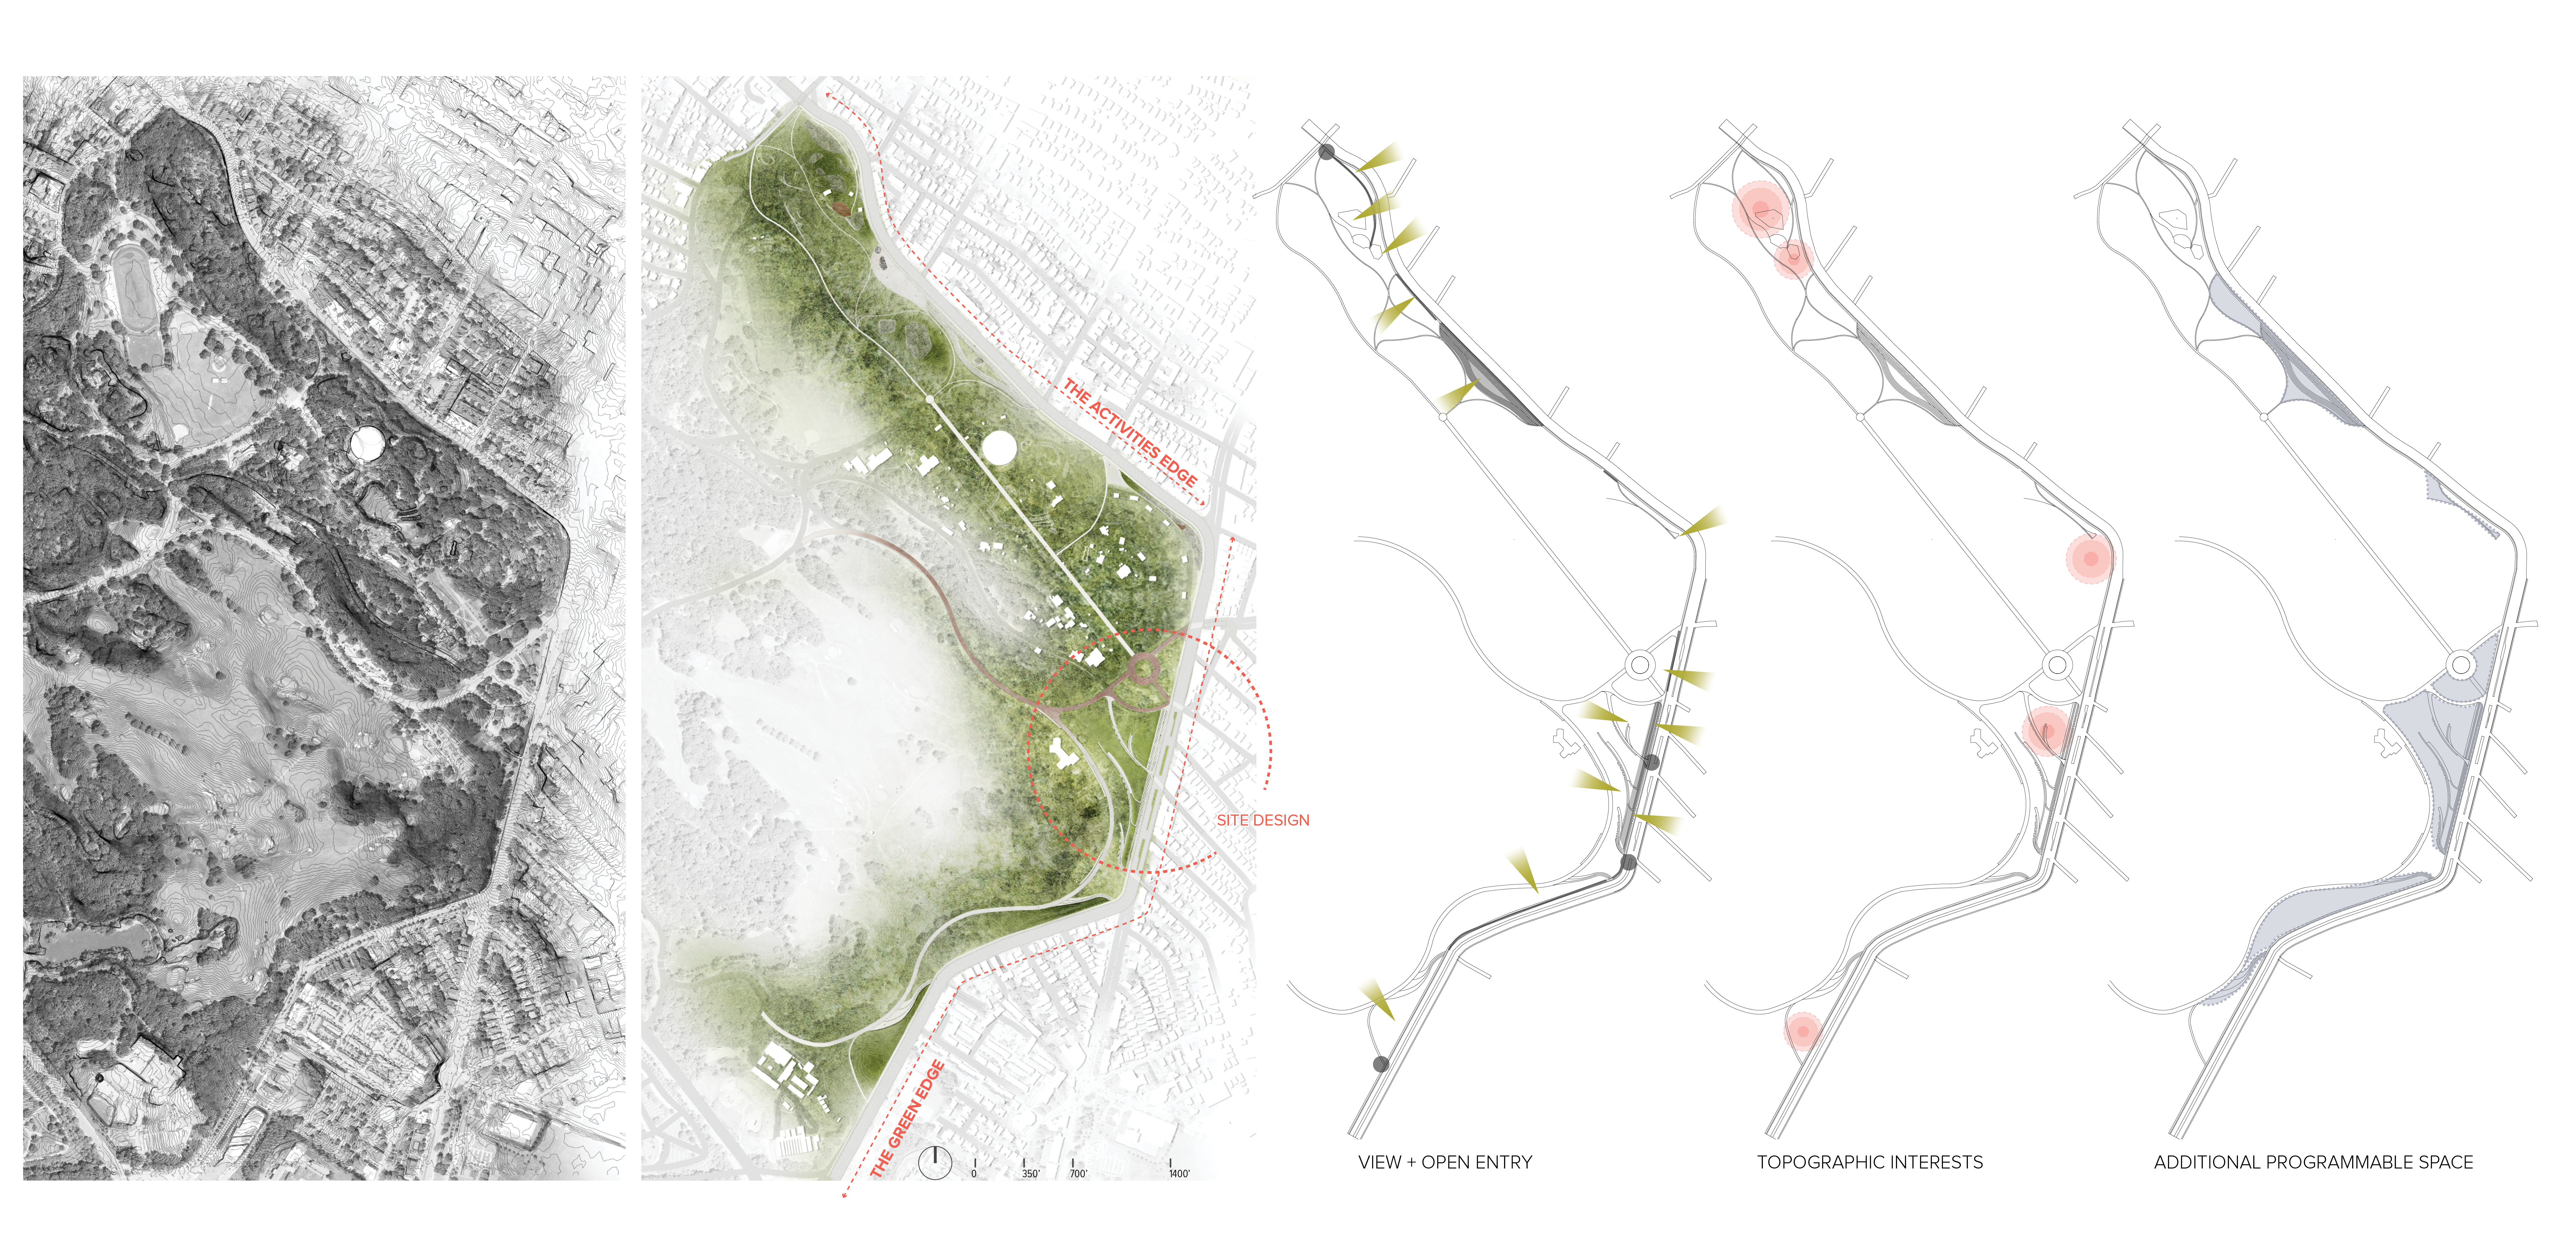 Eastern Edges - Overall Plan and Diagrams